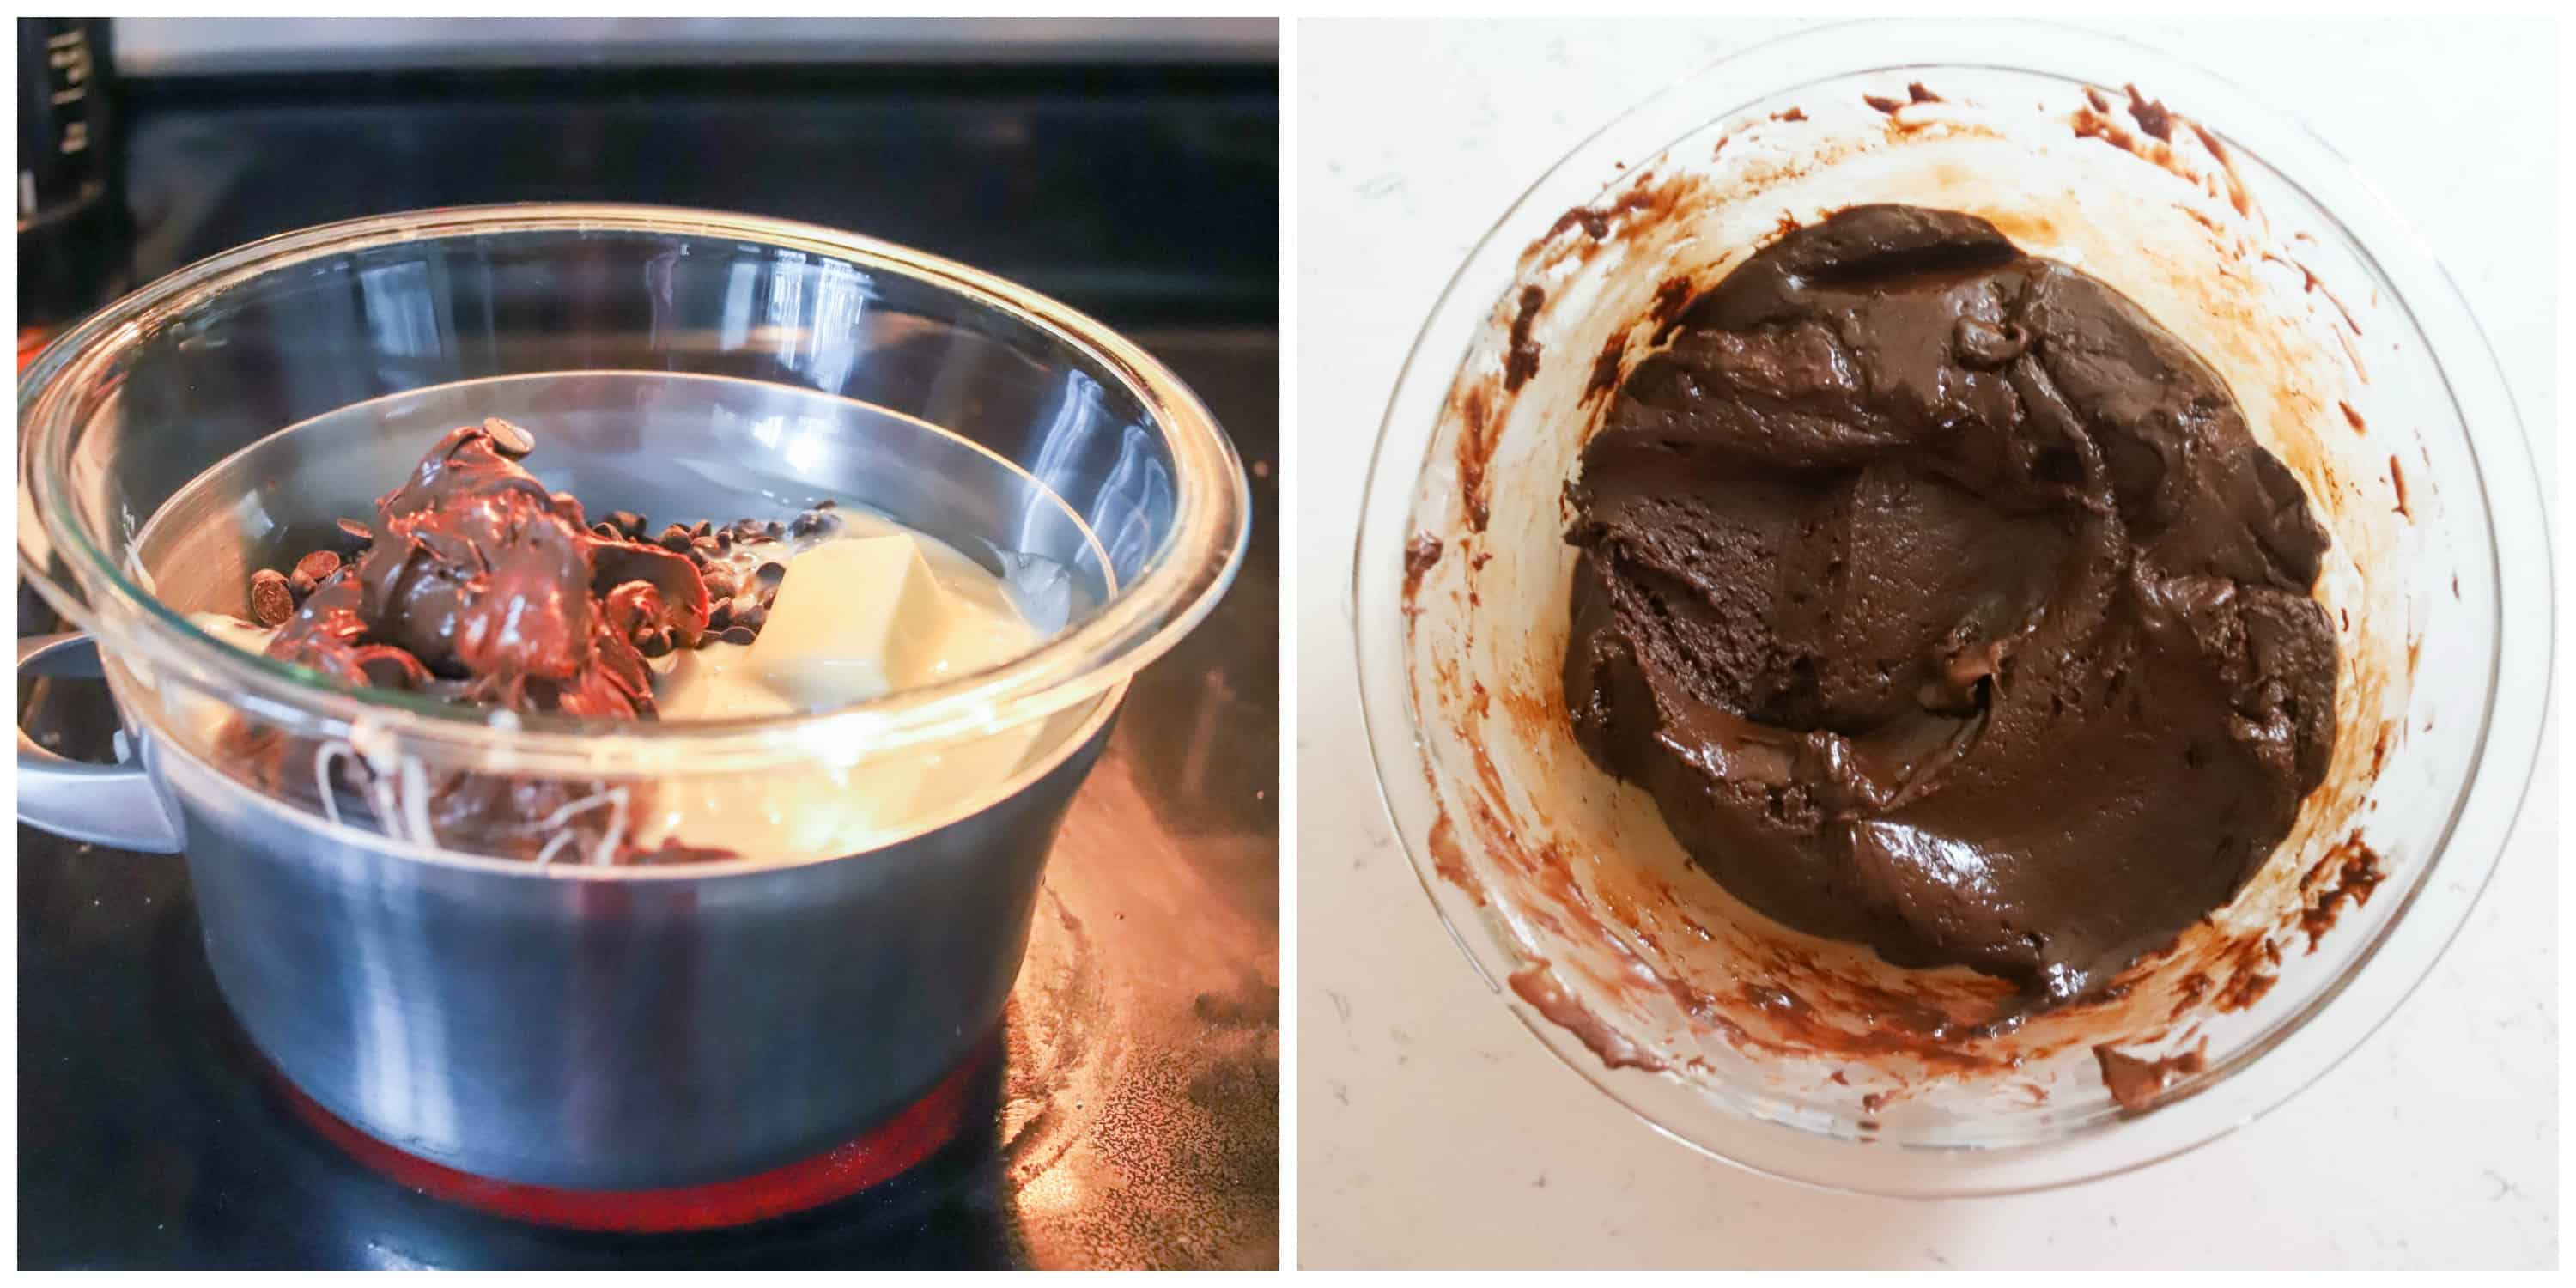 two photos of fudge mixture in bowl over double boiler and fudge mixture melted together